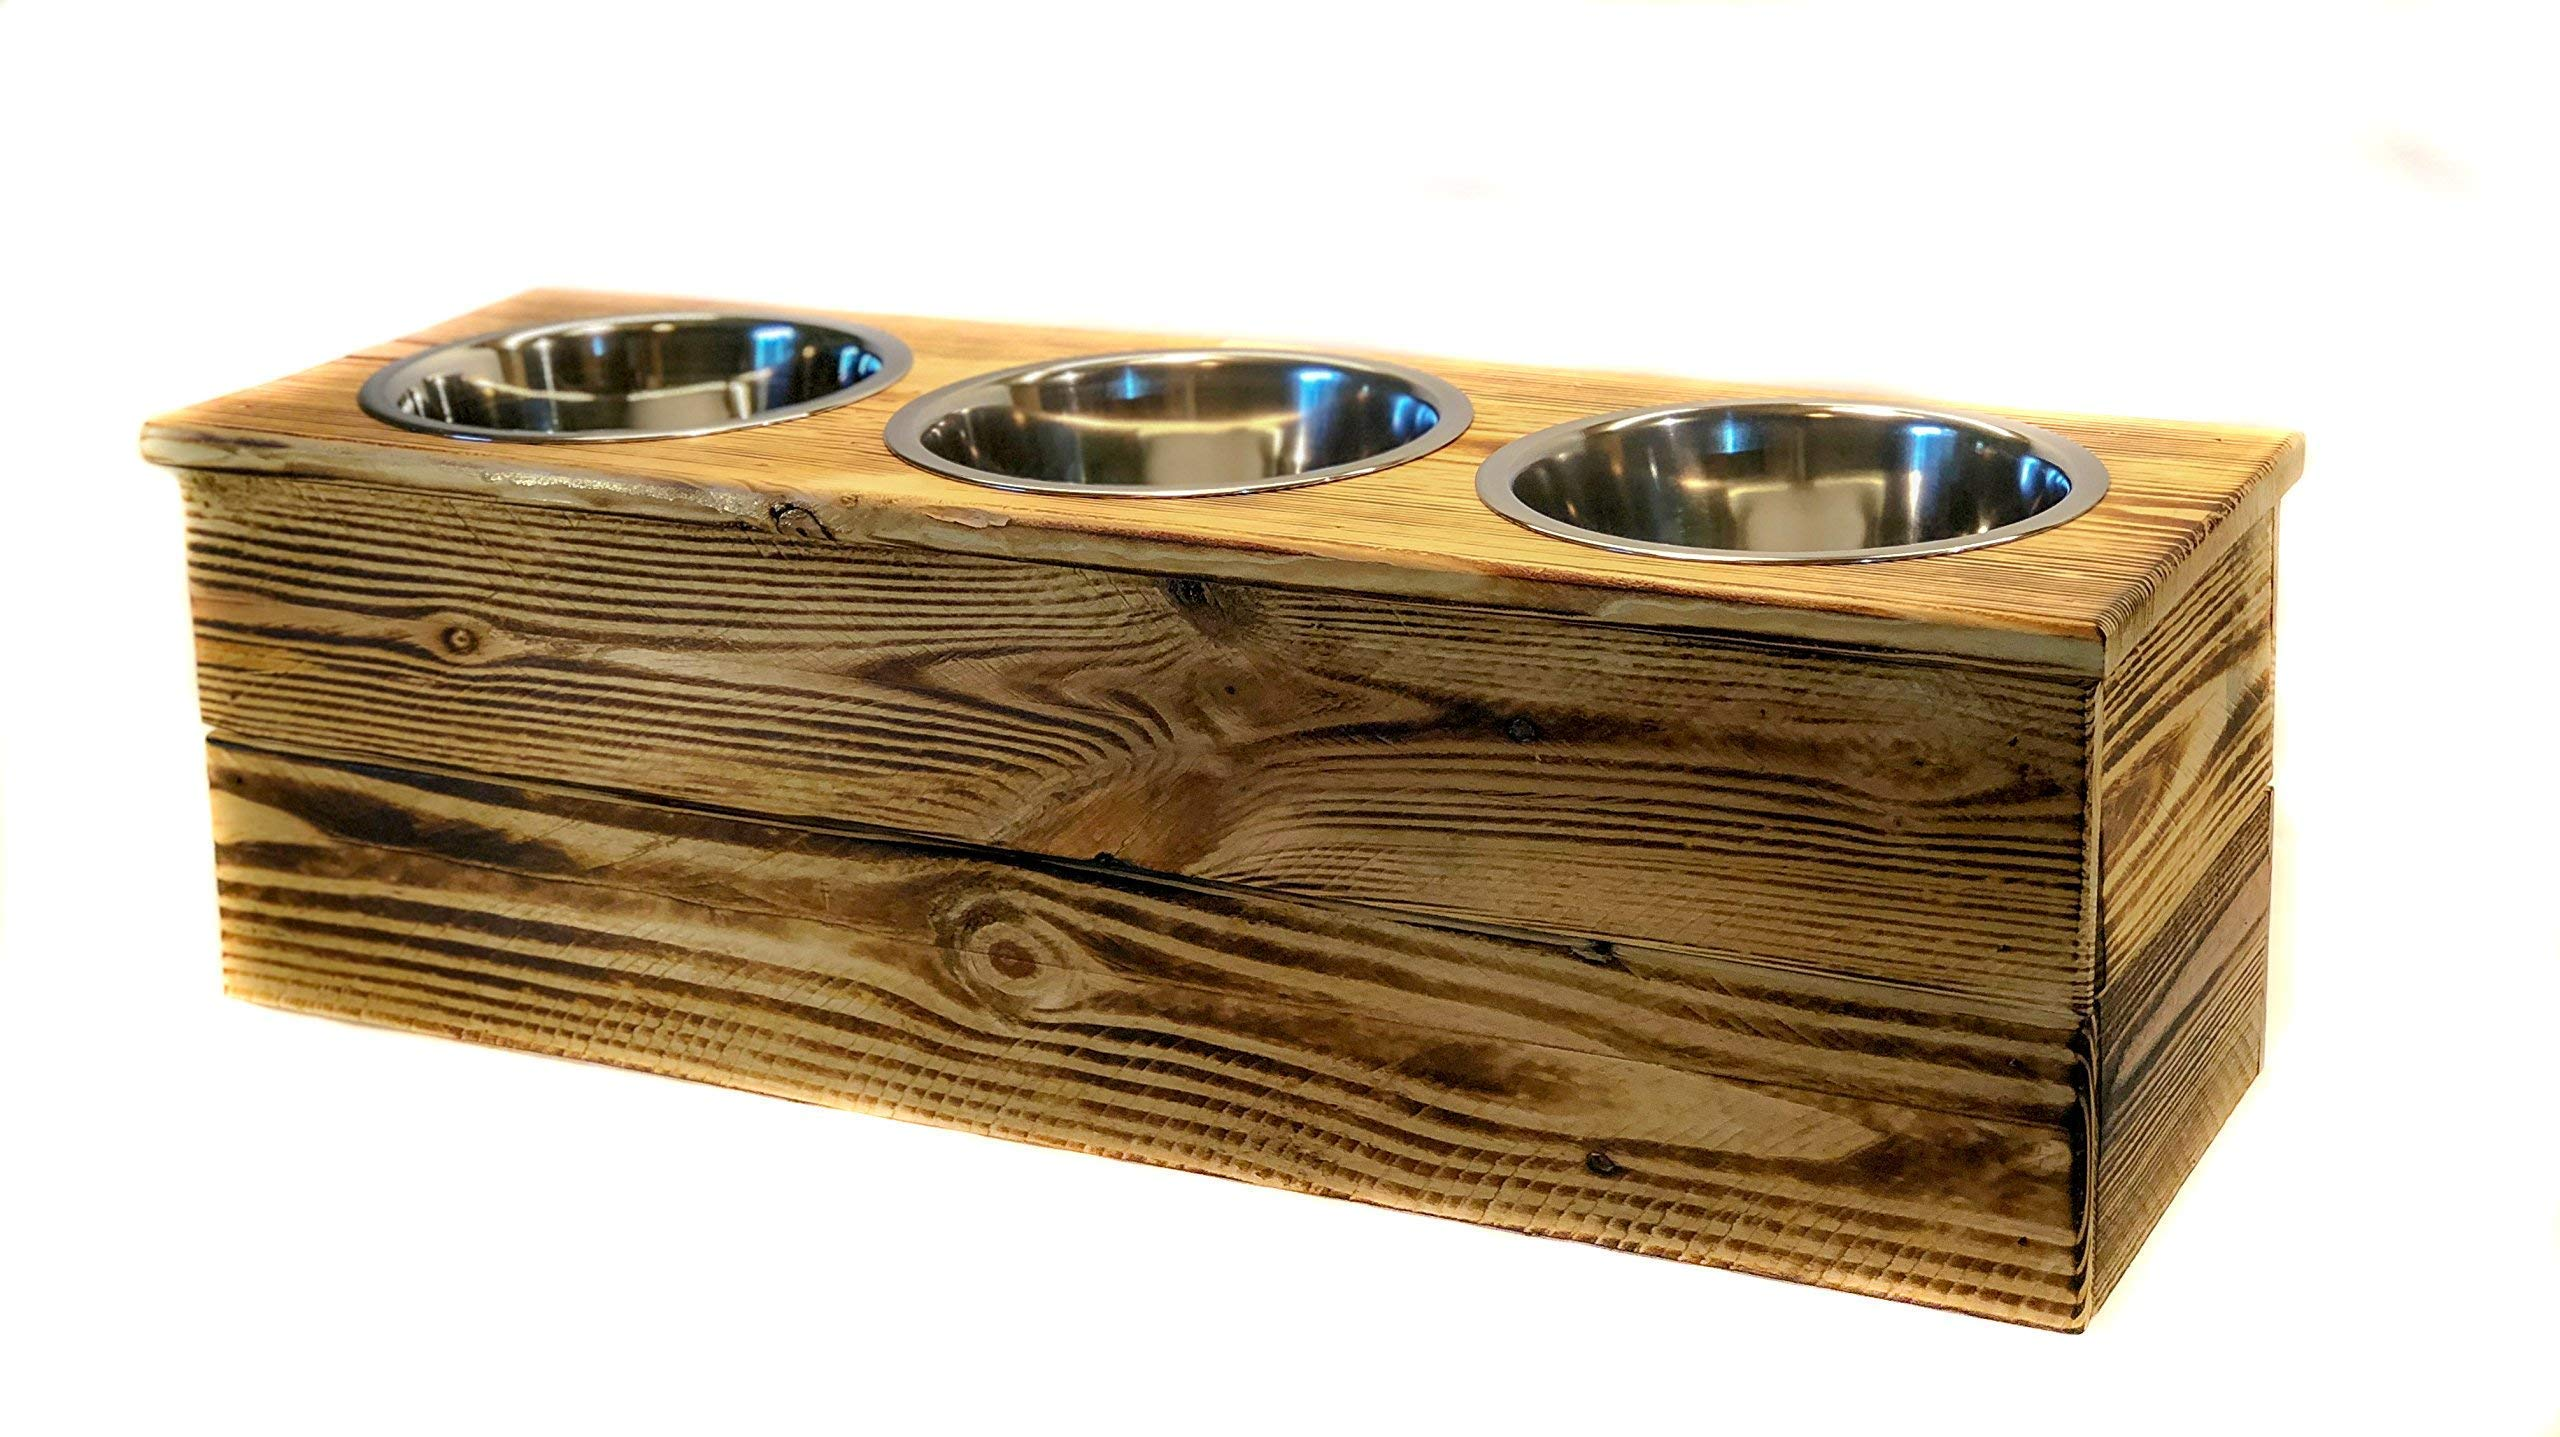 Elevated Large Three Bowl Pet Feeder From Reclaimed Pallet Wood by 6 Dogs Decor